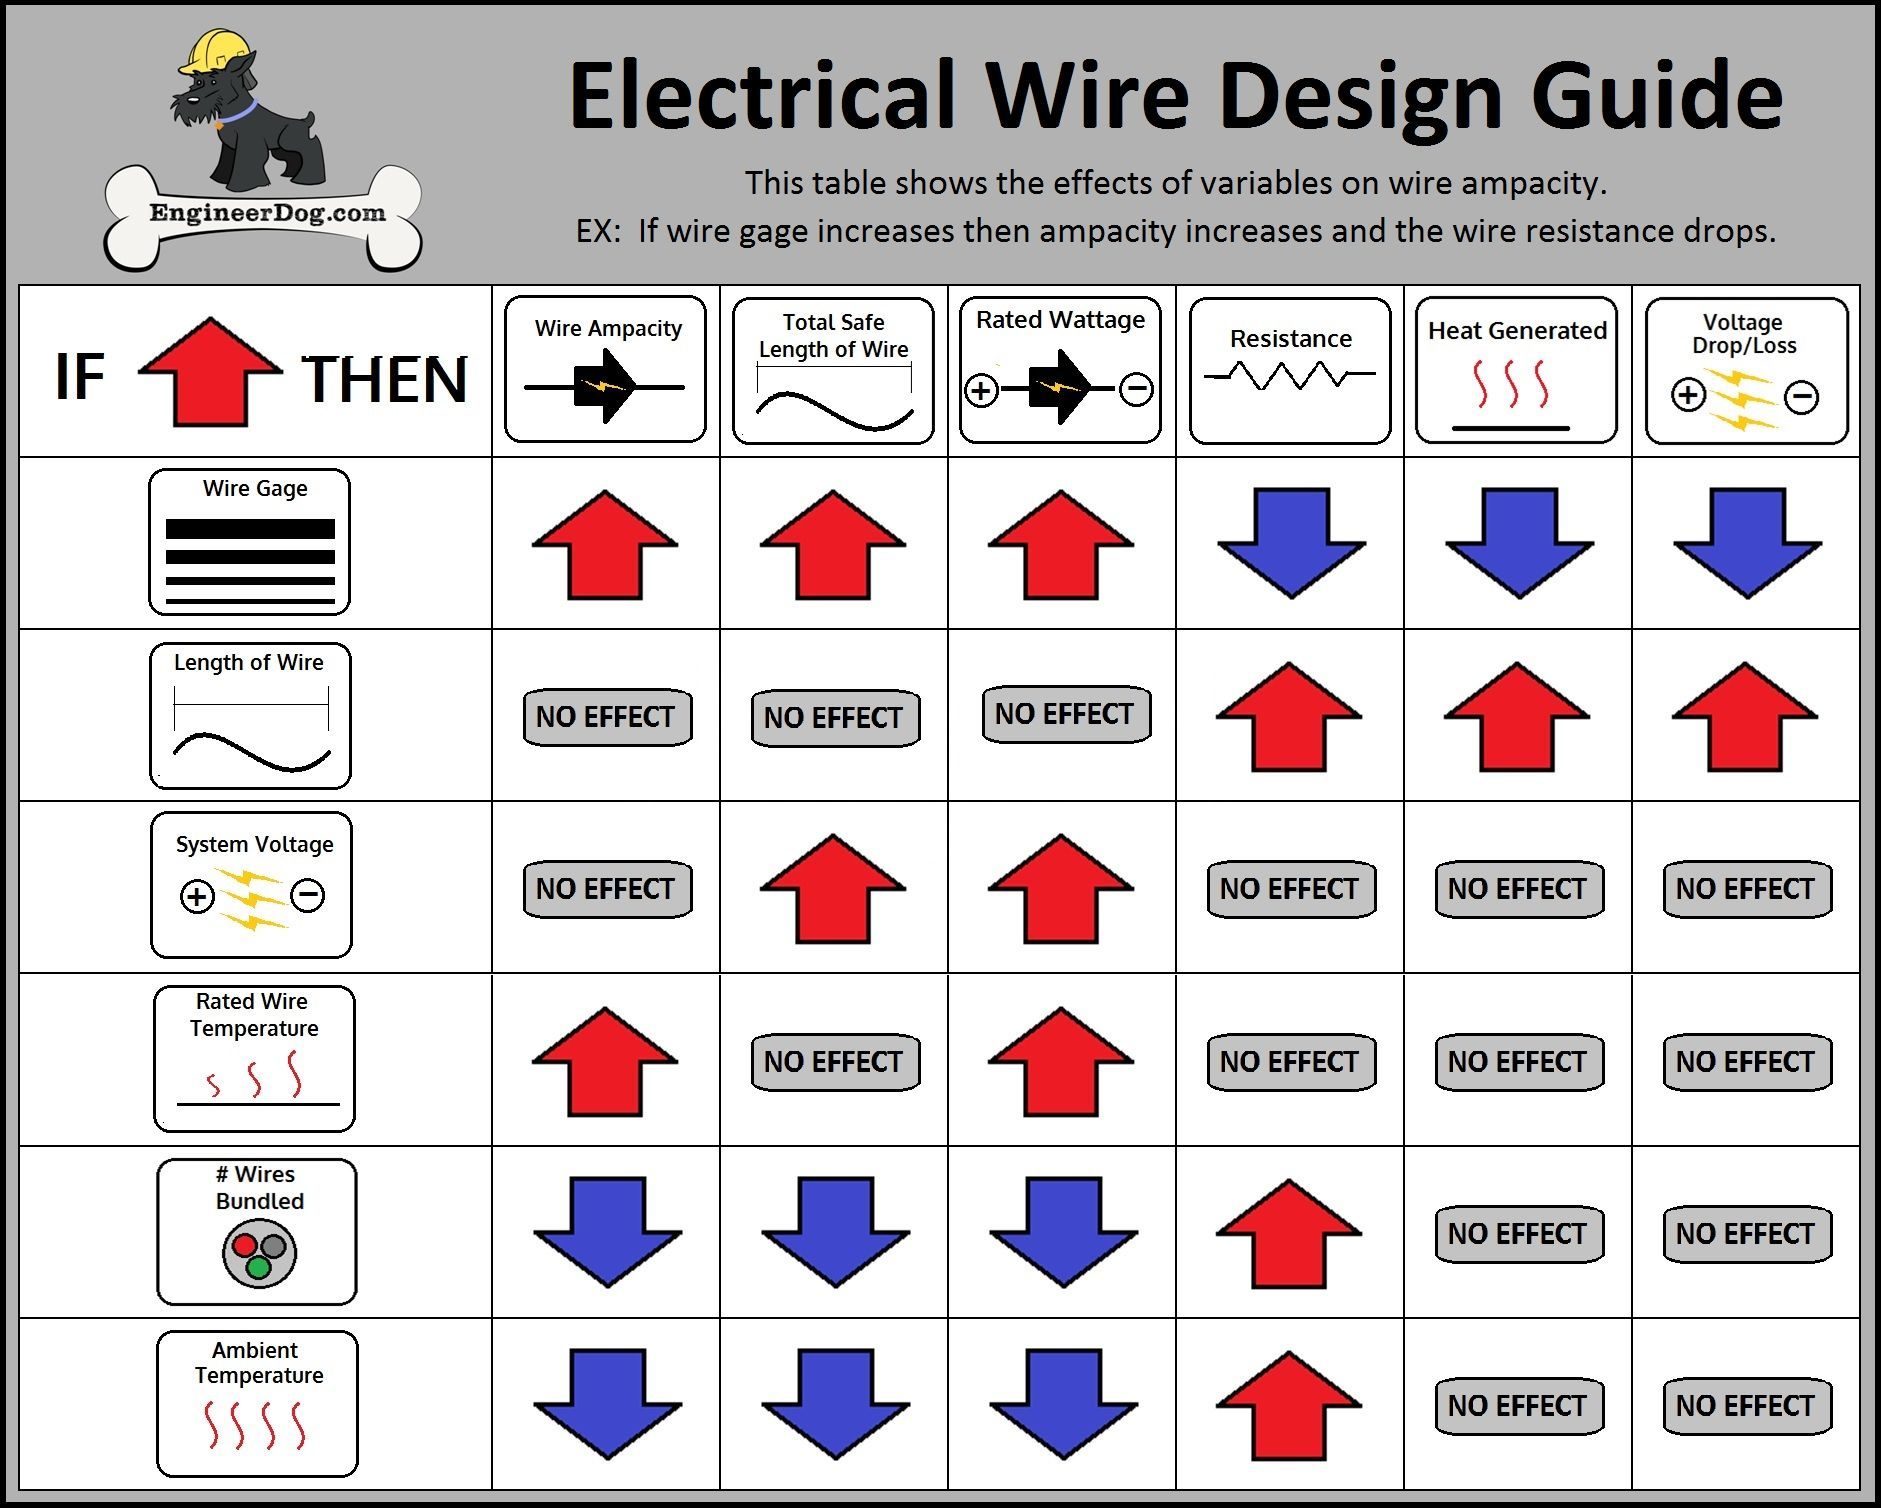 Electrical wire design guide see website for free wire gauge electrical wire design guide see website for free wire gauge calculator guide keyboard keysfo Image collections